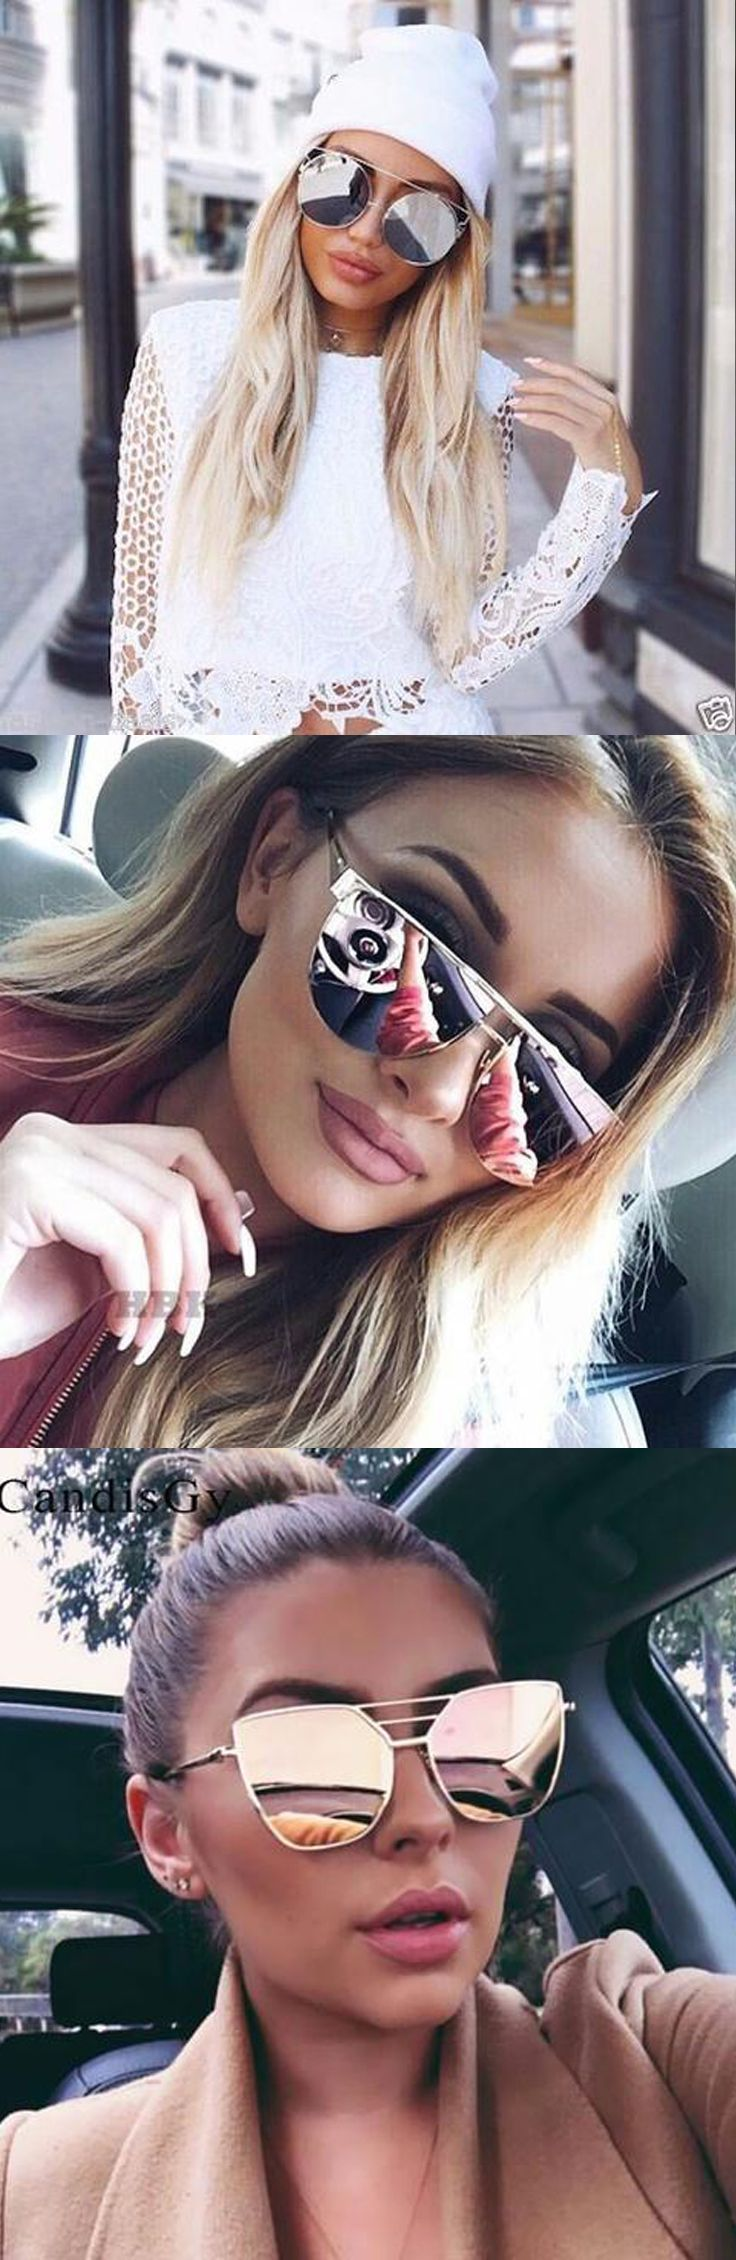 2017 trendy cat eye vintage luxury womens and mens sunglasses, Bohemian Jewelry,  Gifts,Gyps,Cochealla Style,Cochealla Sunglass Eyewear, Festival Accessories, Coachella, Sunglasses,mirror sunglasses,trendy sunglasses,cat eye sunglasses, coachella style, c https://twitter.com/faefmgaifnae/status/895102852929945600